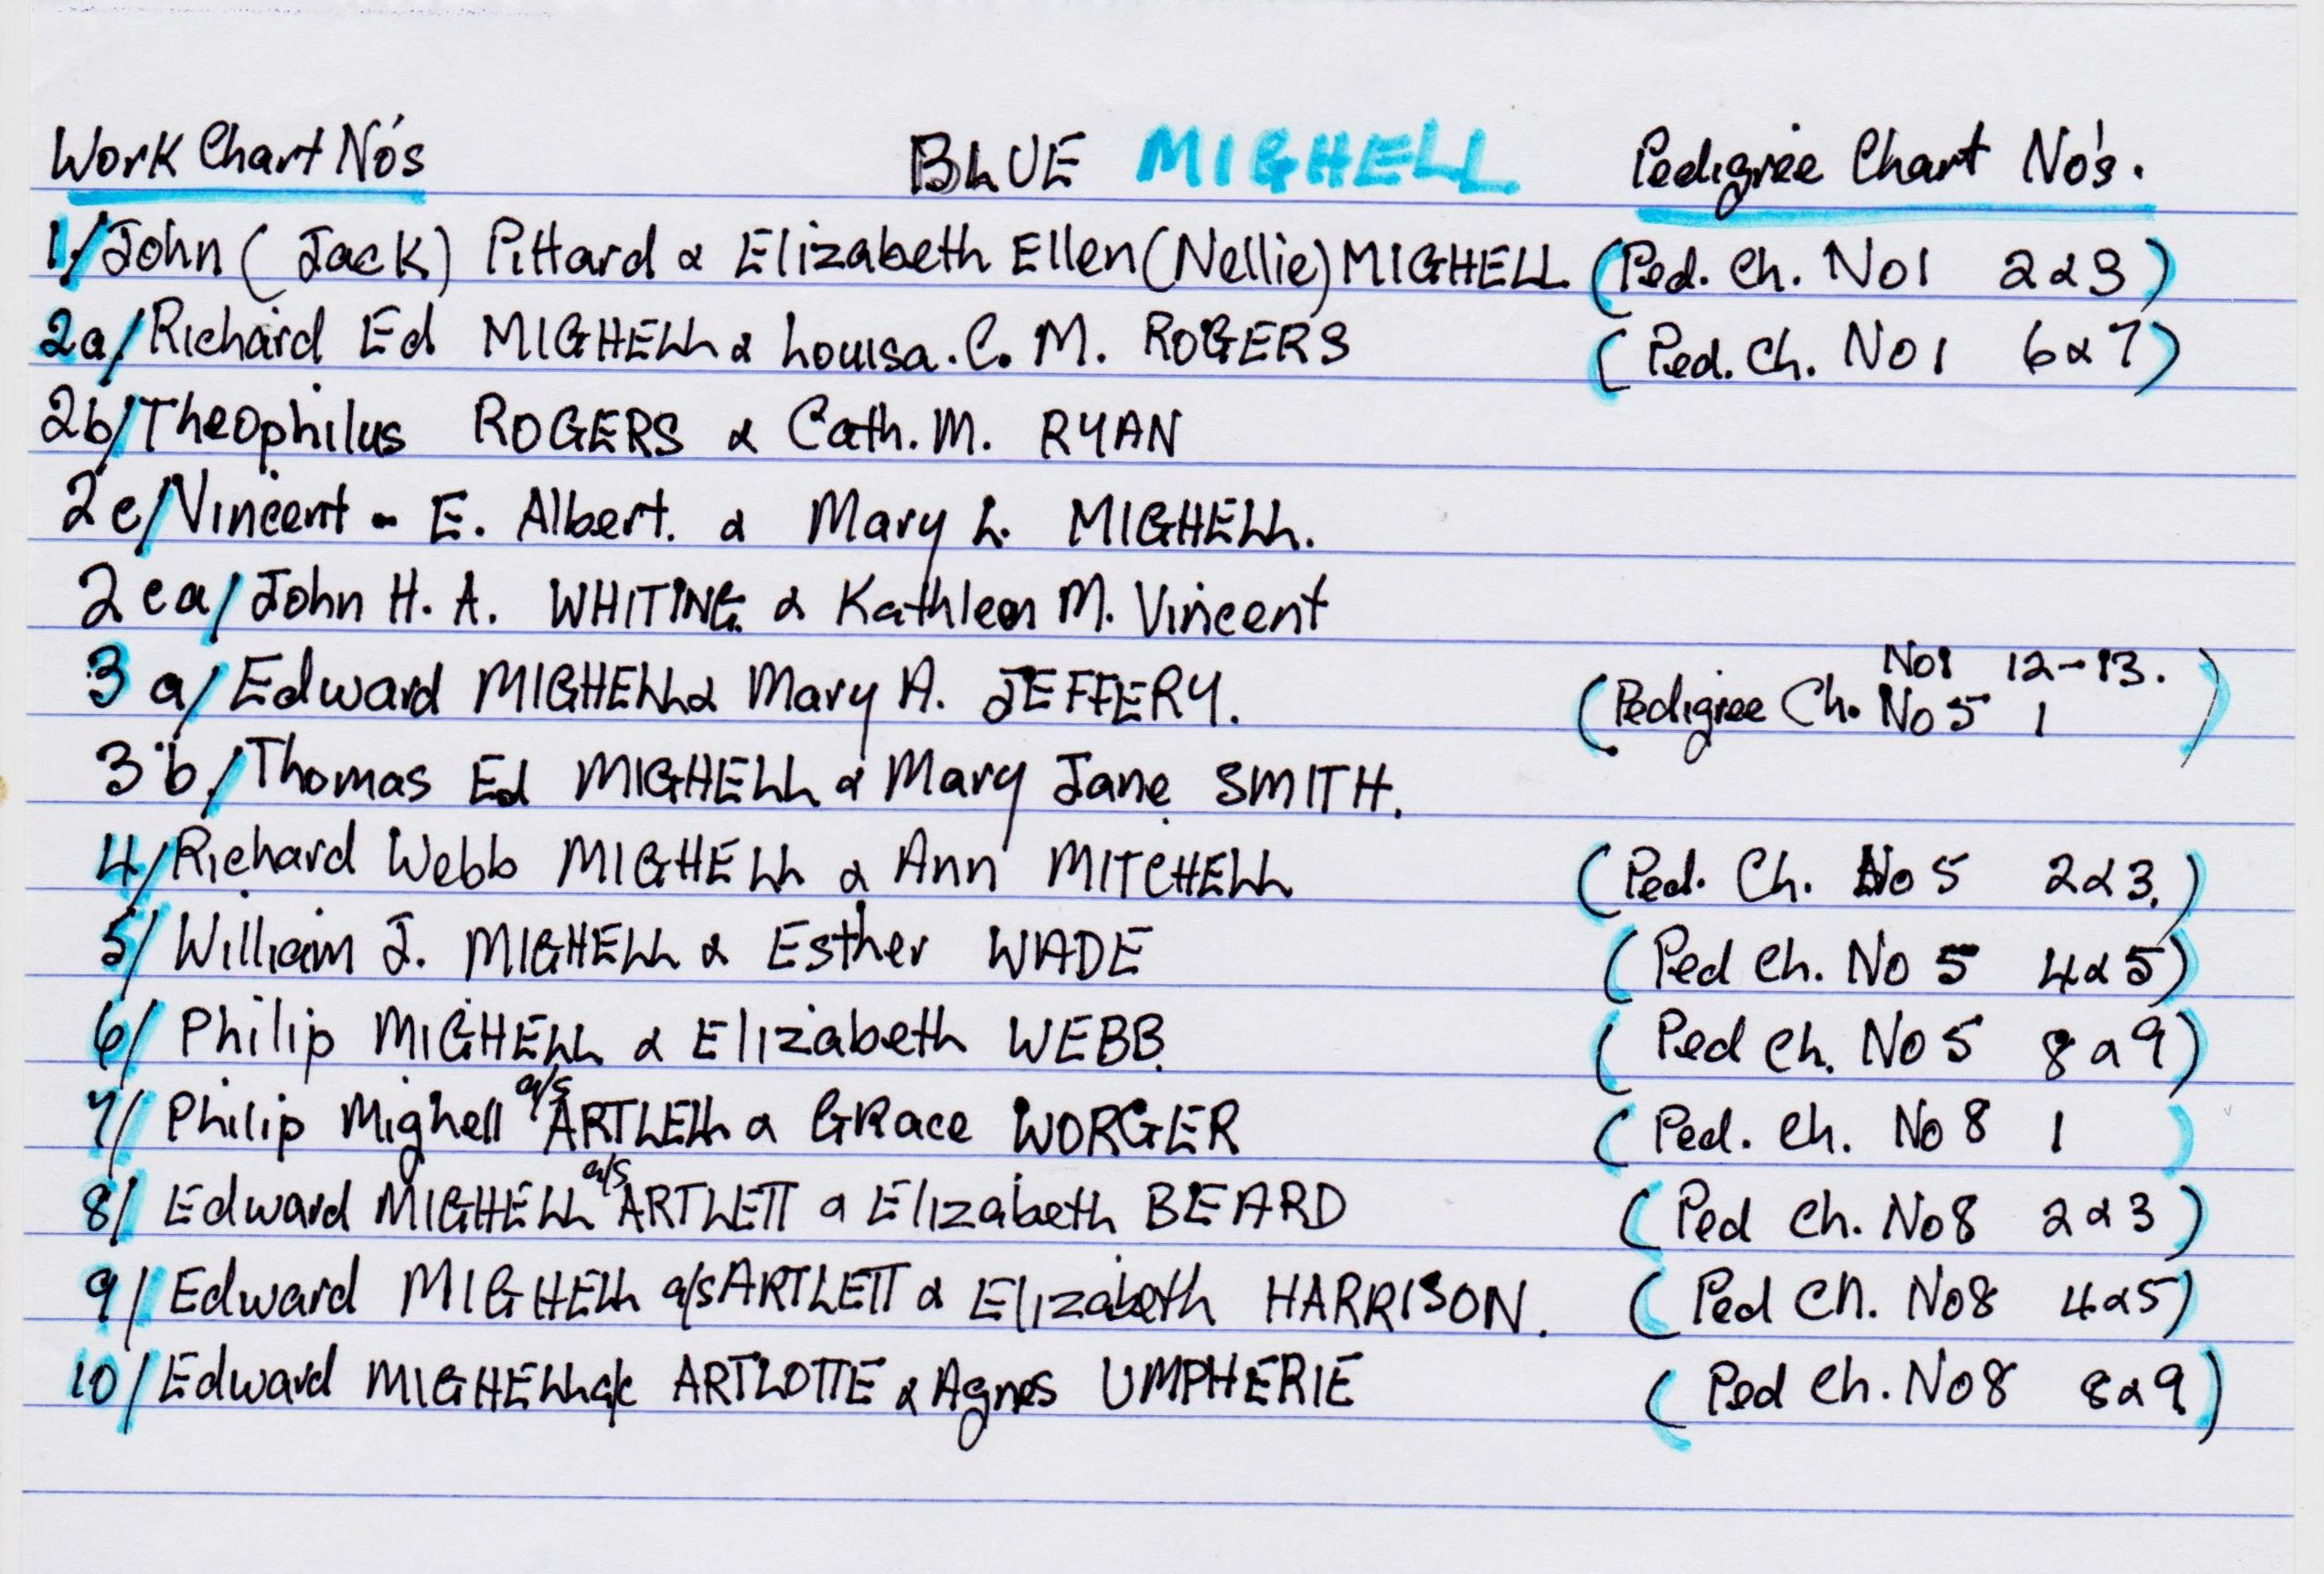 Family Tree Amp Work Charts For The Michell Alias Artlett Families Included In Pedigree Charts No